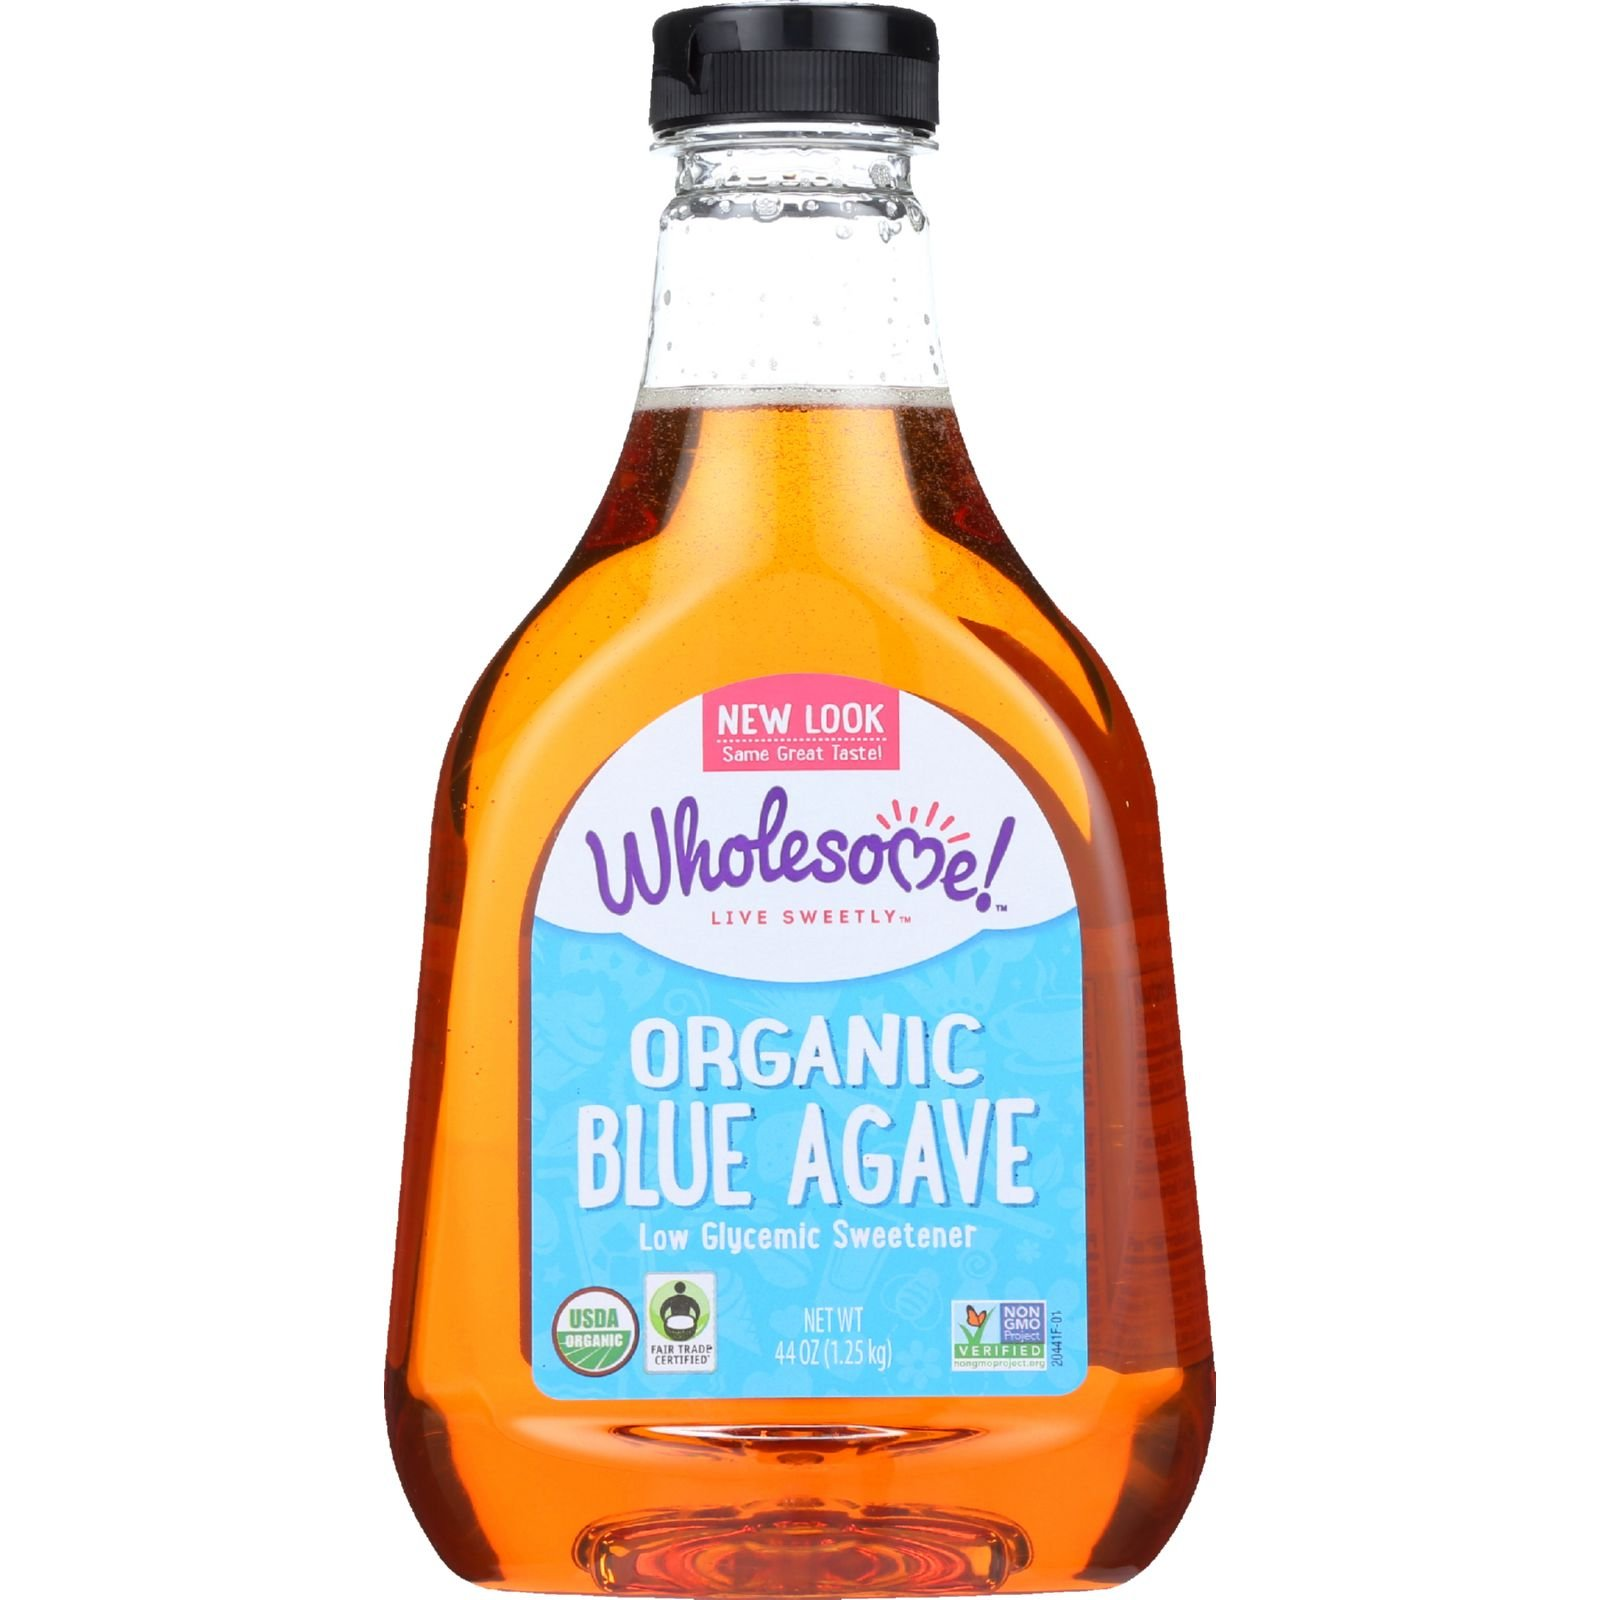 Wholesome Sweeteners Blue Agave - Organic - 44 oz - case of 6 - Gluten Free - Low Glycemic Sweetener by Wholesome Sweeteners (Image #1)